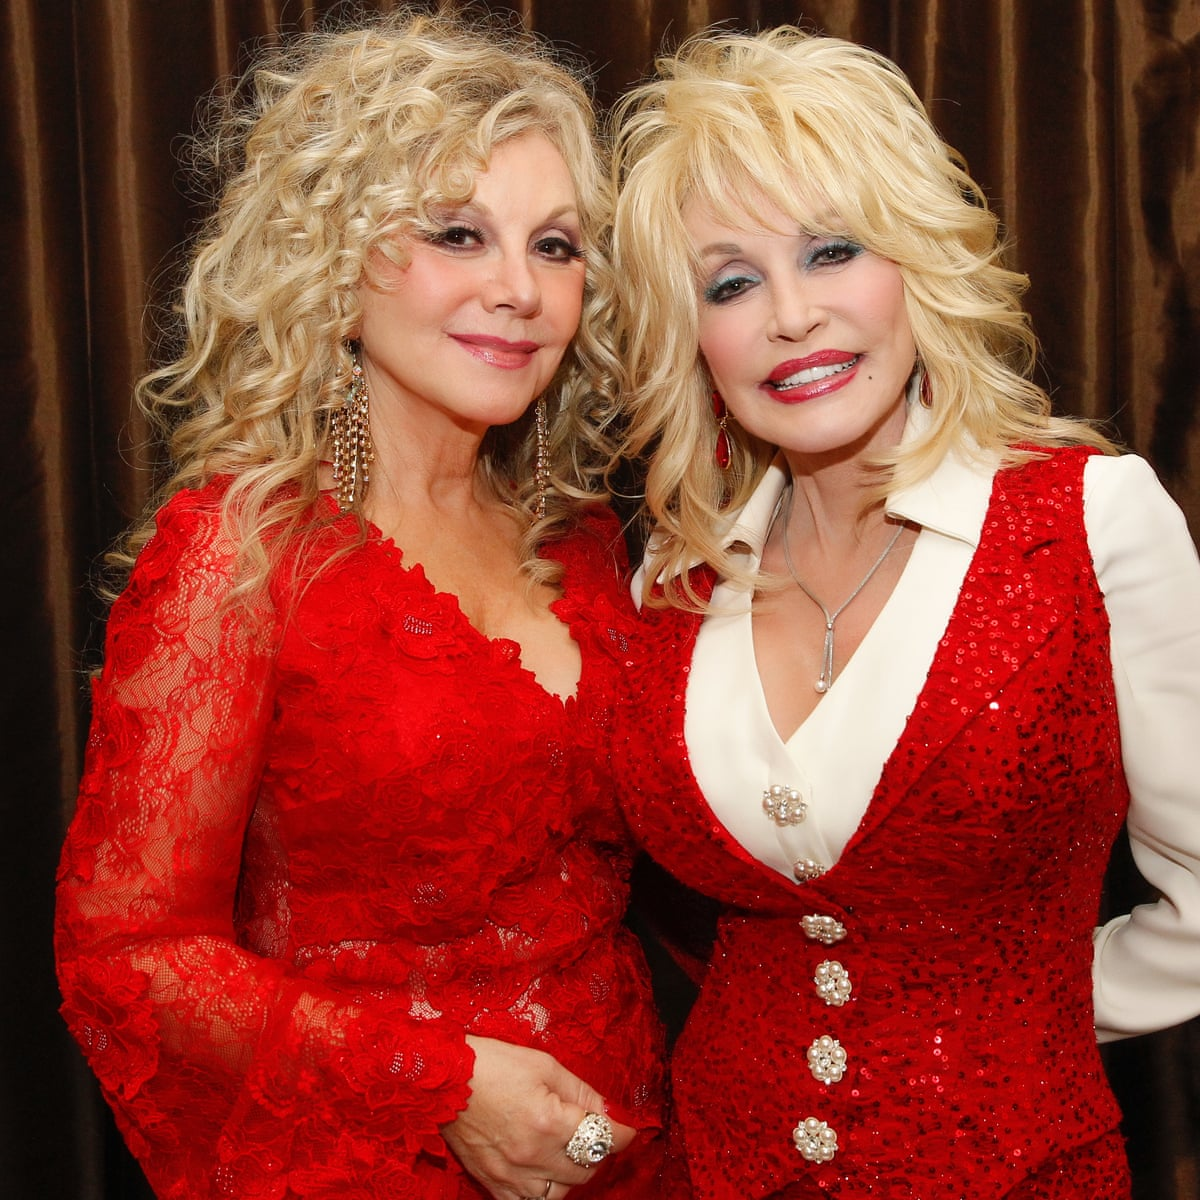 Dolly Parton S Sister Ashamed Of Star Over Silence On Metoo Protest Dolly Parton The Guardian